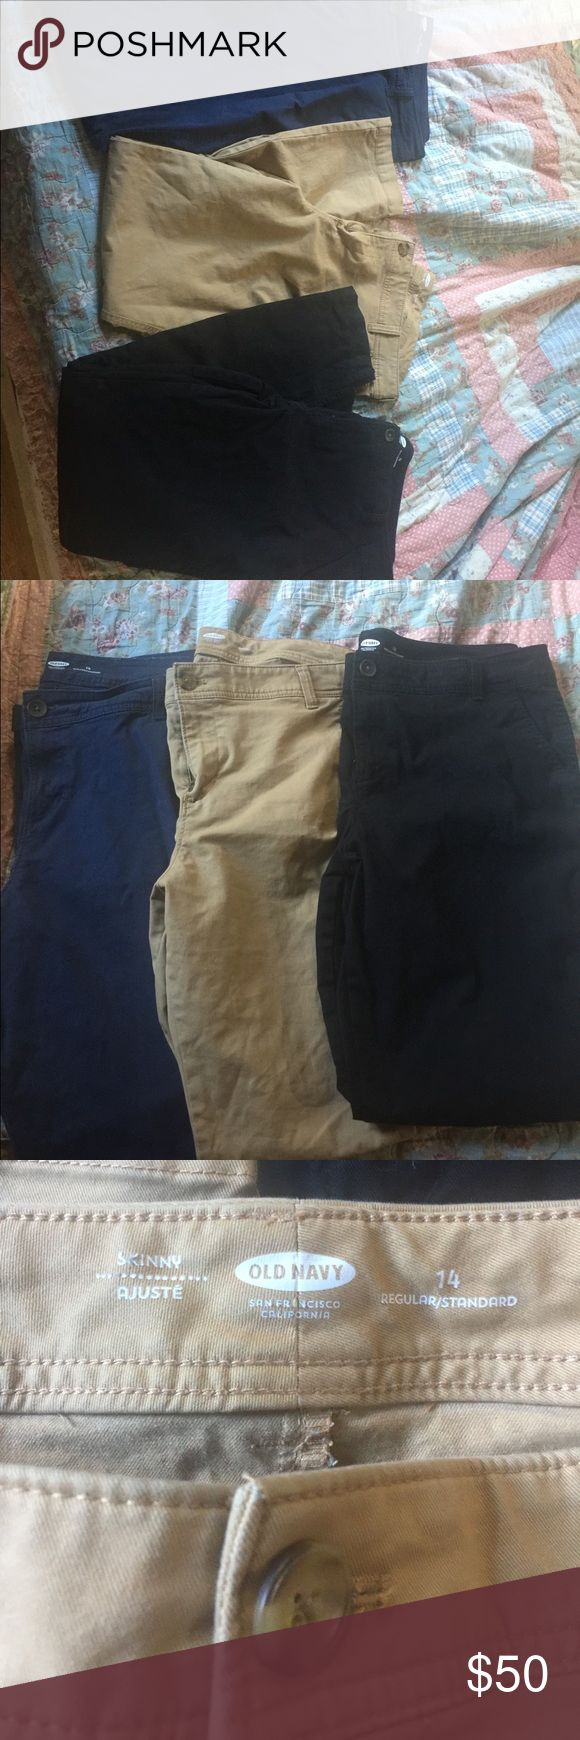 Old navy work pants I've 14 regular length all only worn about once due to me losing weight. The navy pair is boot cut & the black & khaki pair are skinny. These retail for $25 each pair. Feel free to make offers! Old Navy Pants Skinny